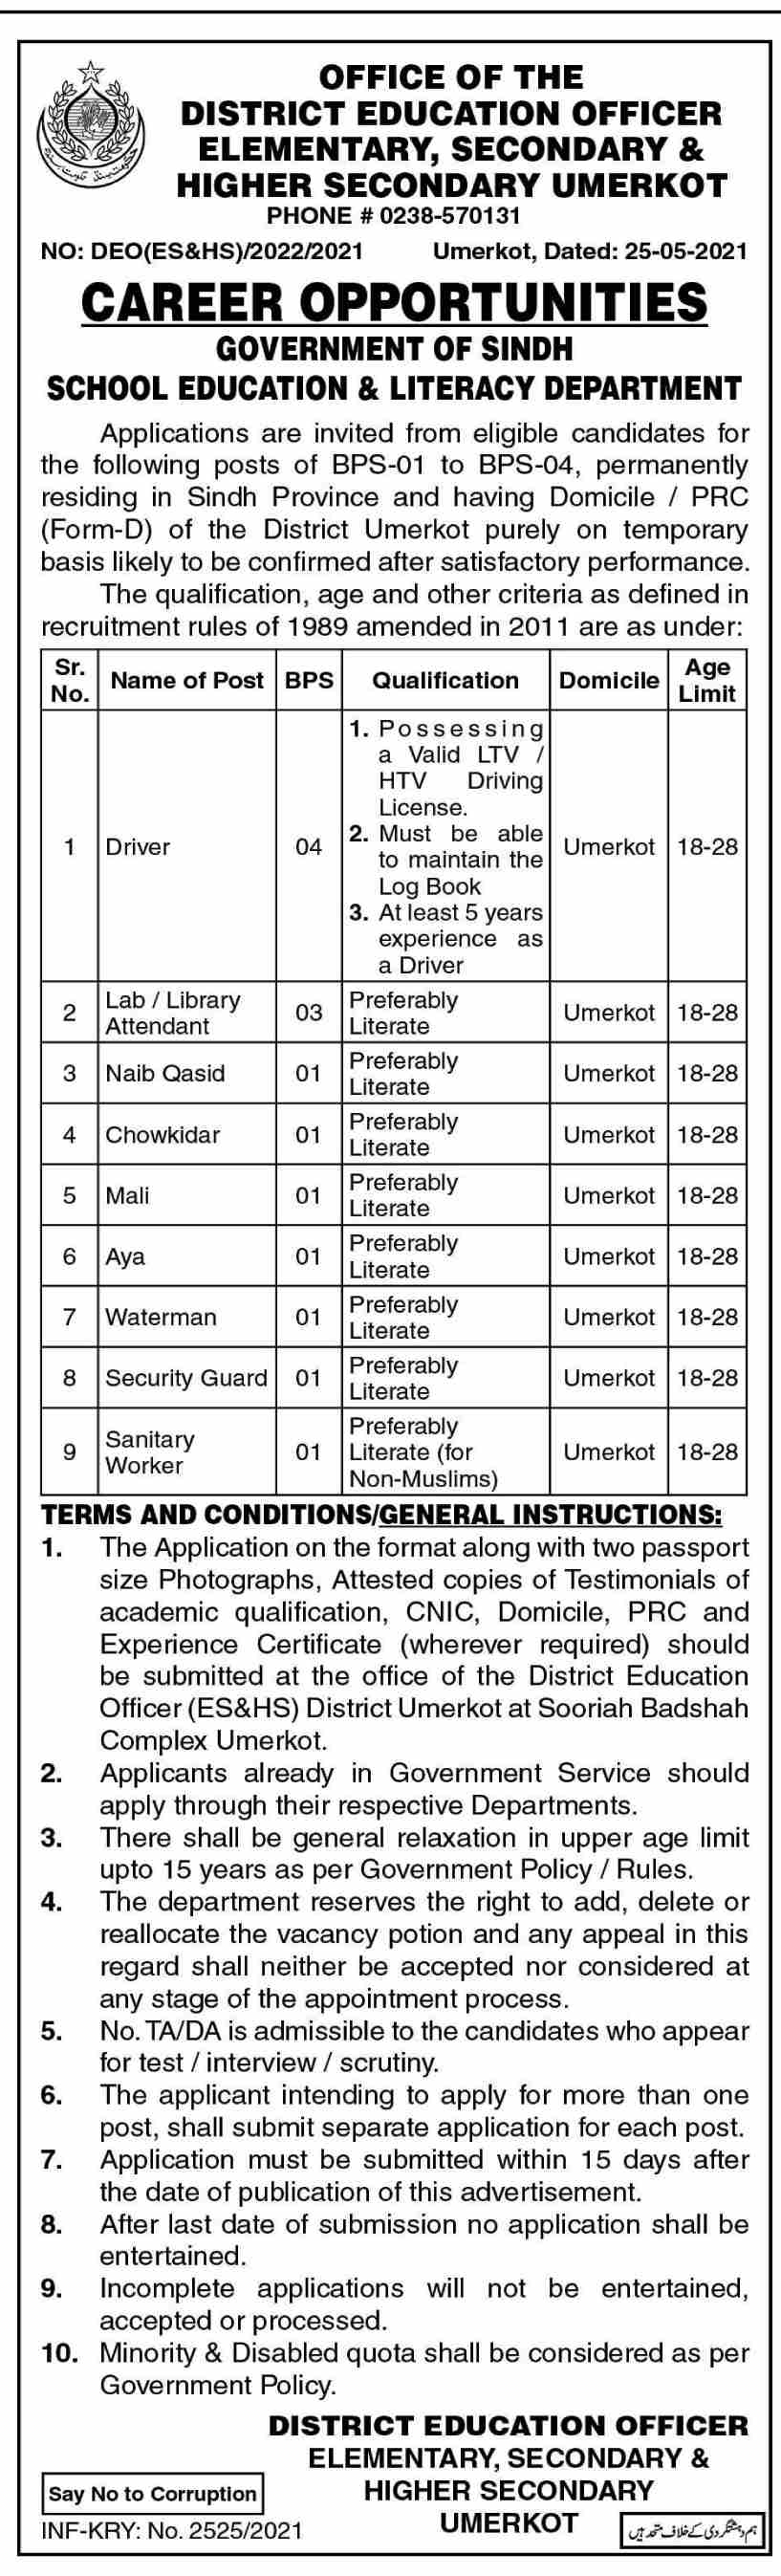 Elementary Secondary & Higher Secondary School Department Sindh 2021 in Pakistan